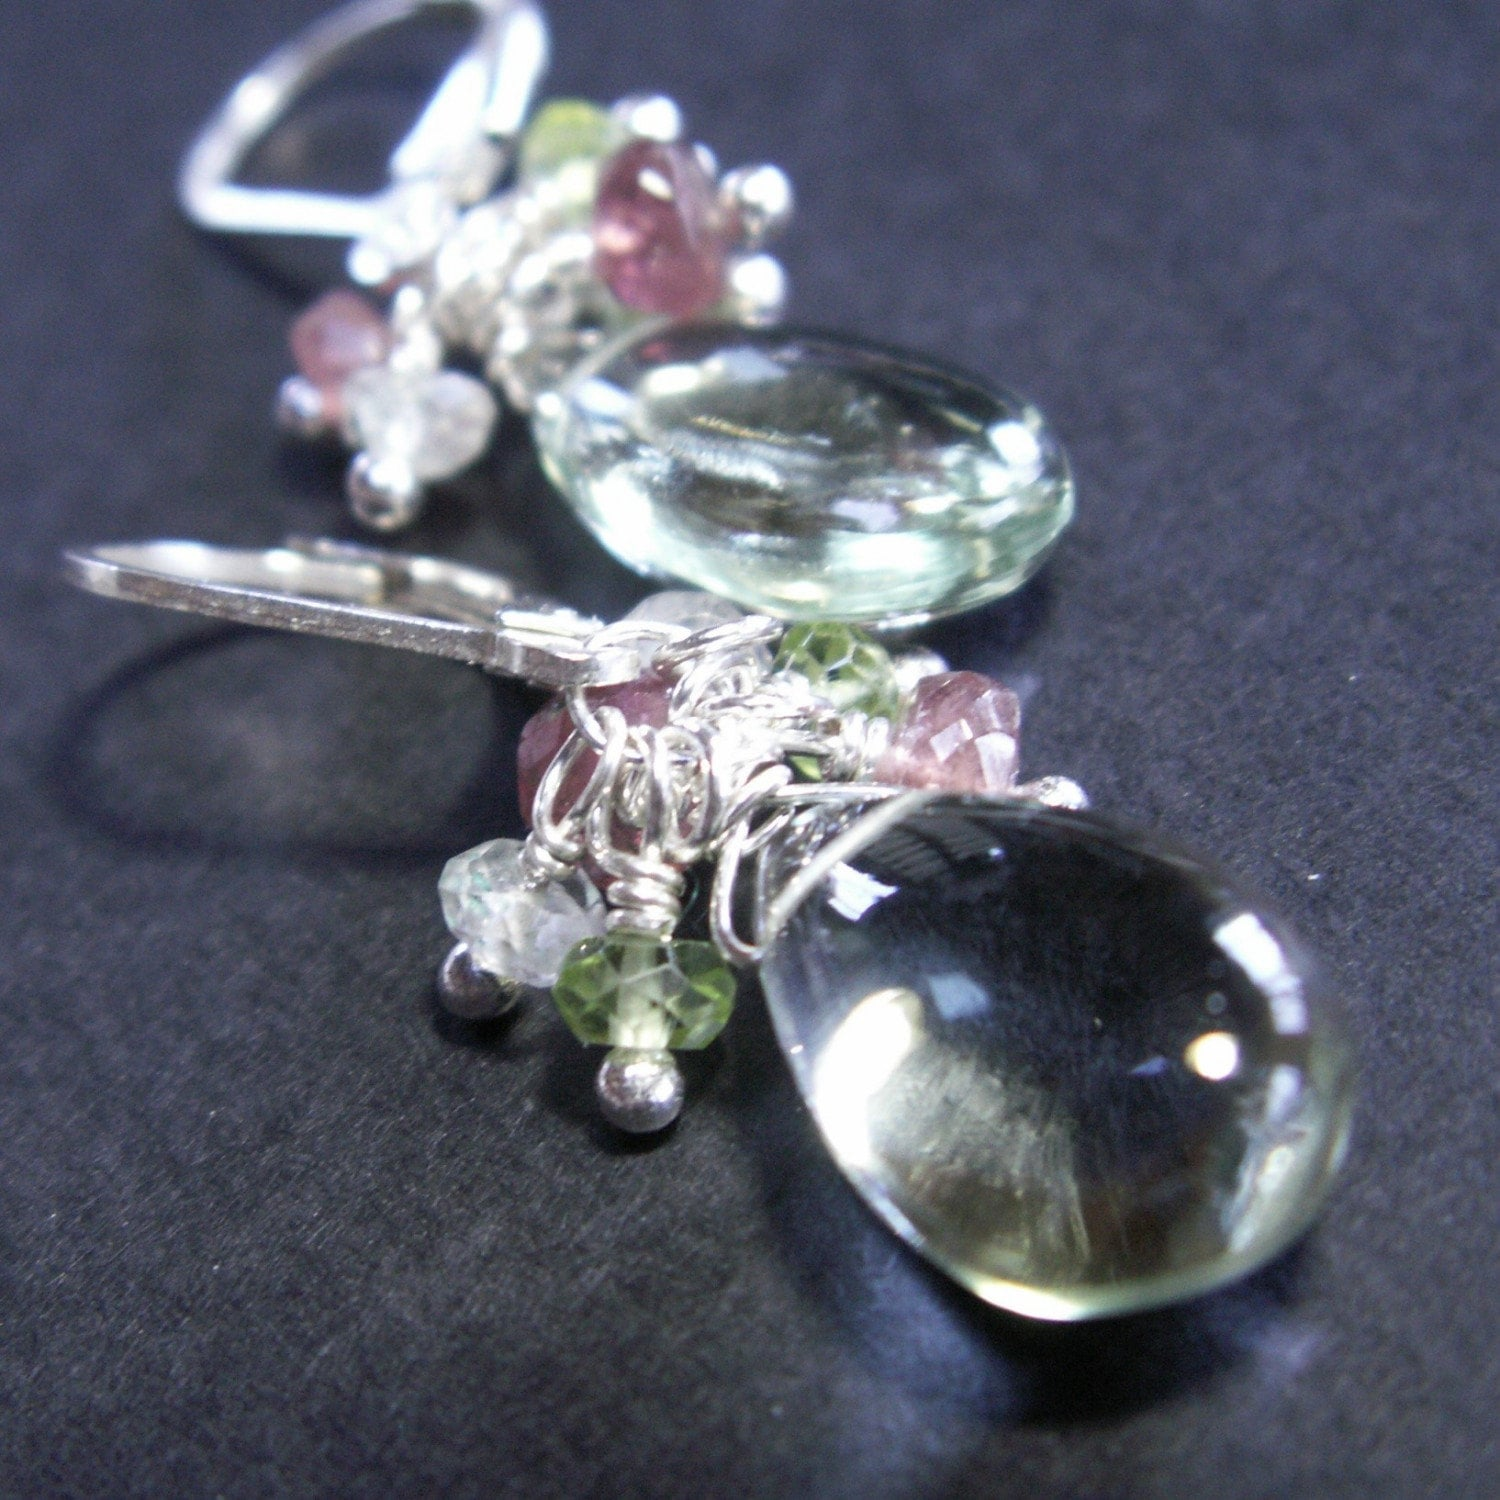 handcrafted jewelry earrings sterling silver green amethyst pink tourmaline